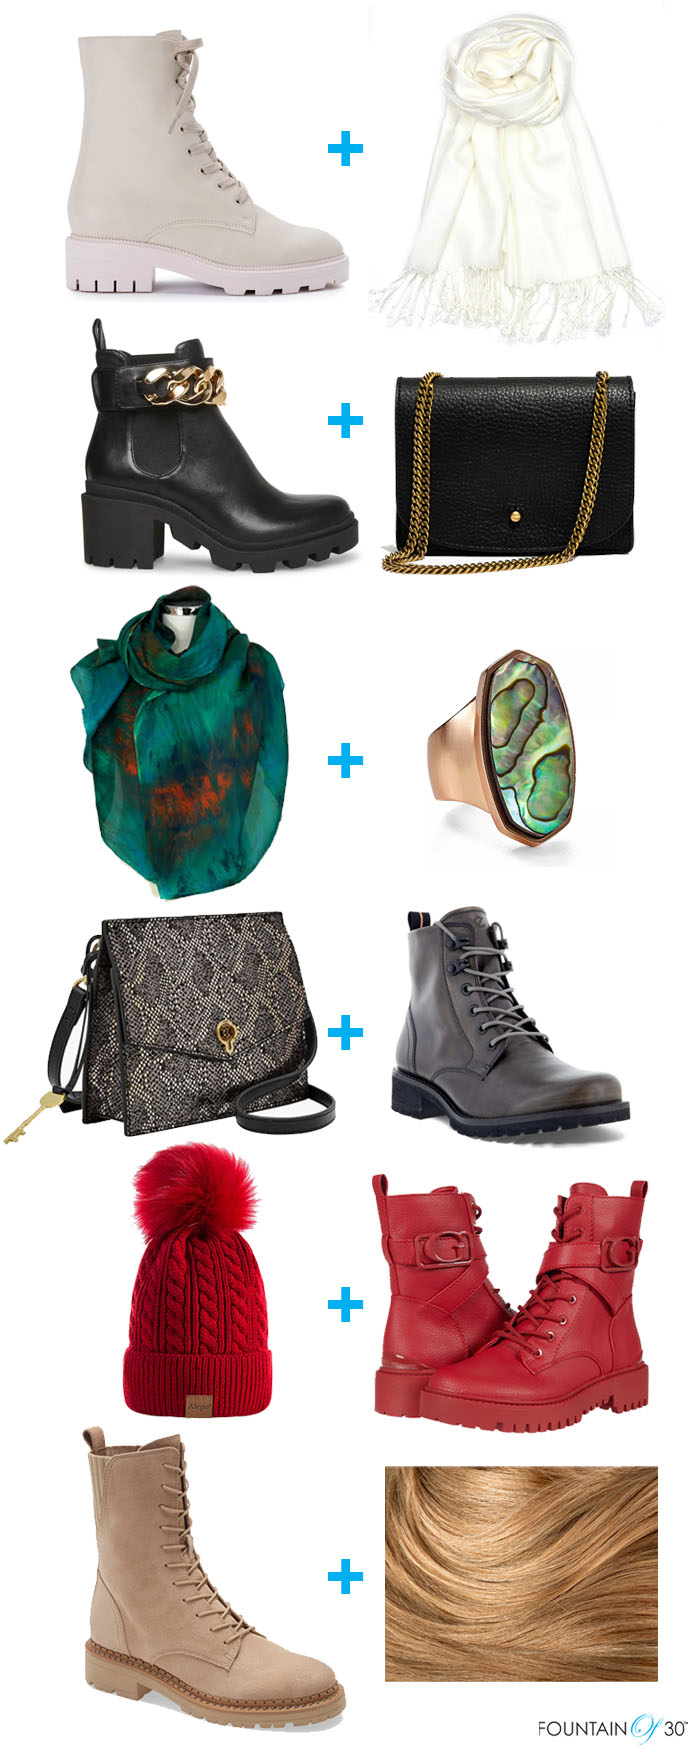 outfit styling tip bookends fountainof30